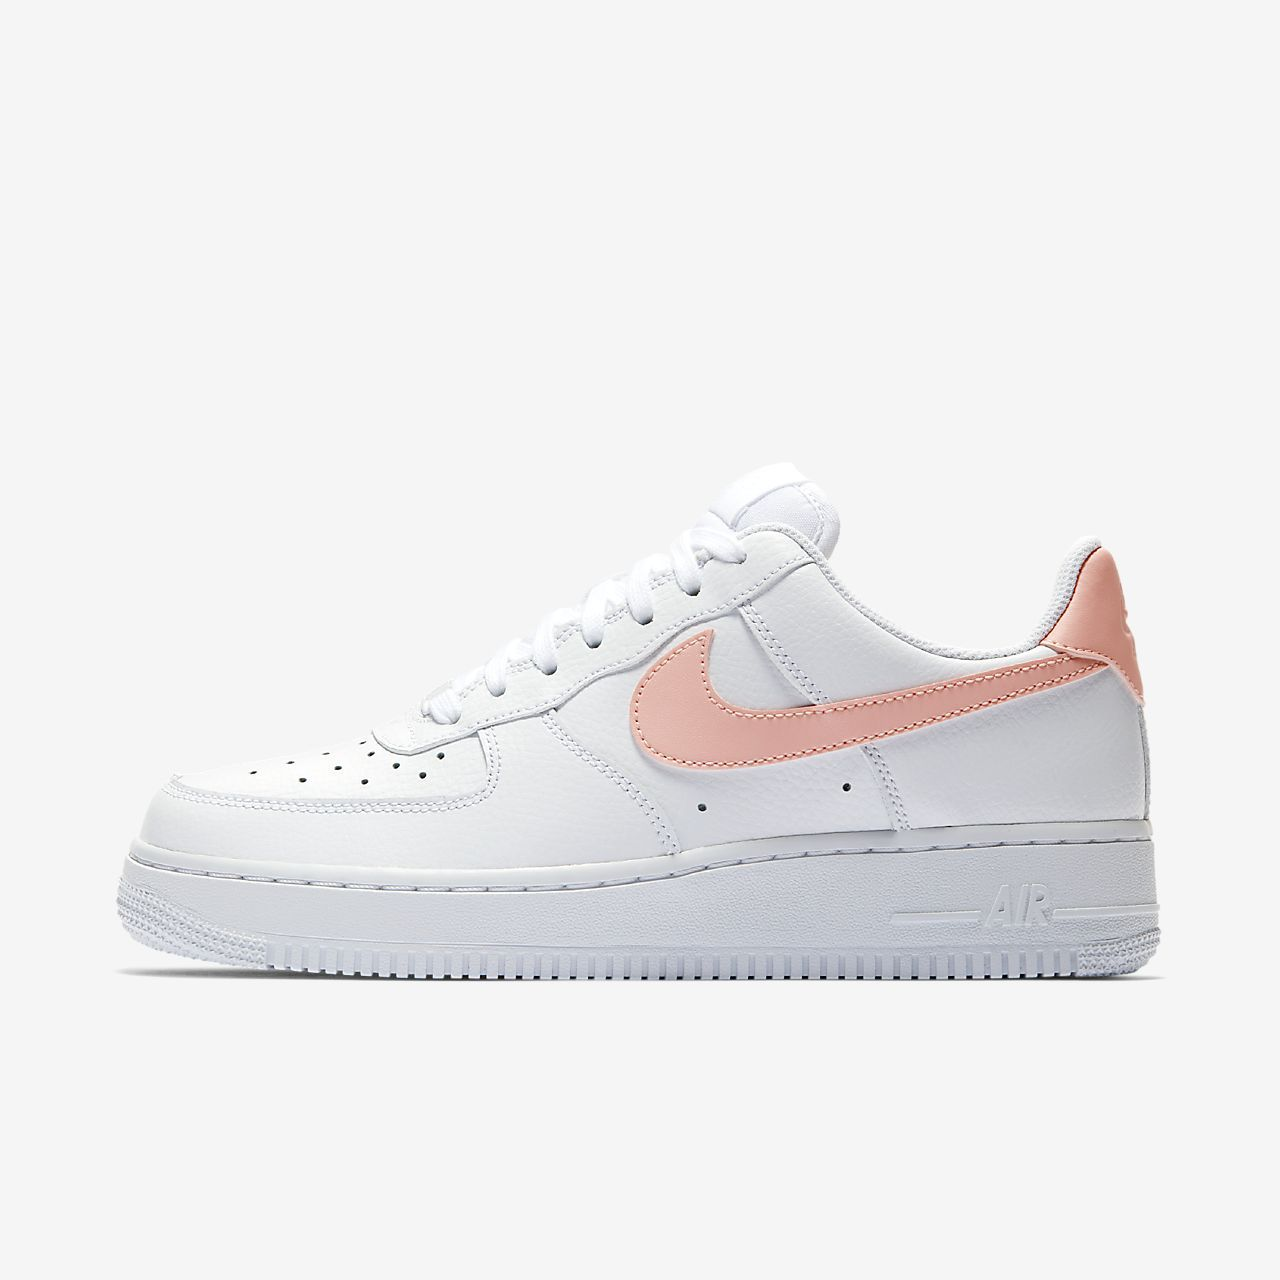 Chaussure Nike Air Force 1 '07 Patent pour Femme | shoes